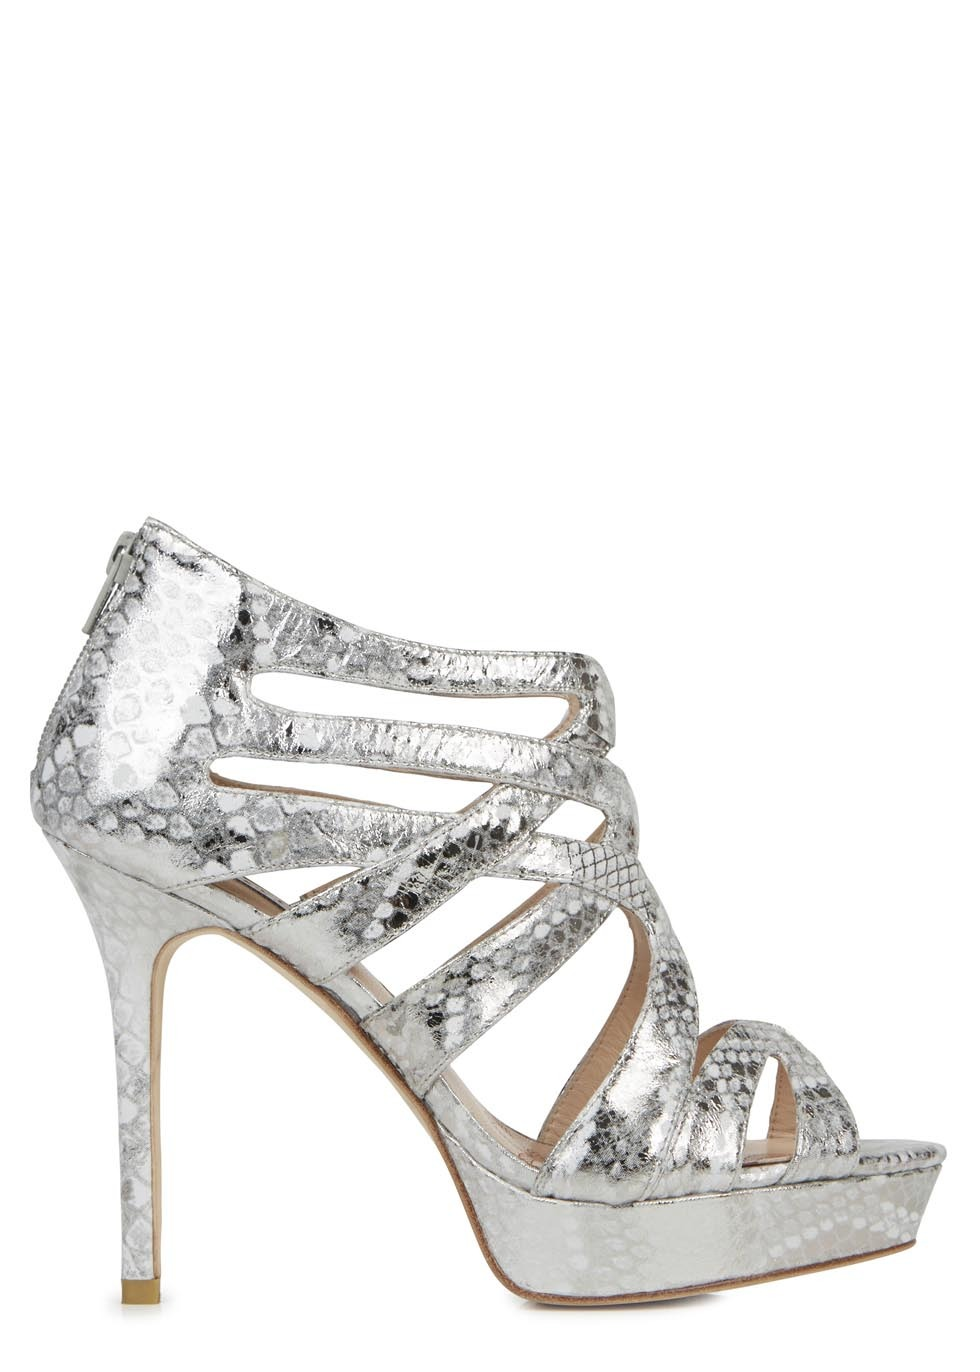 Notting Hill Metallic Leather Sandals - predominant colour: silver; occasions: evening, occasion; material: leather; heel: stiletto; toe: open toe/peeptoe; style: strappy; finish: metallic; pattern: animal print; heel height: very high; shoe detail: platform; trends: shimmery metallics; season: s/s 2014